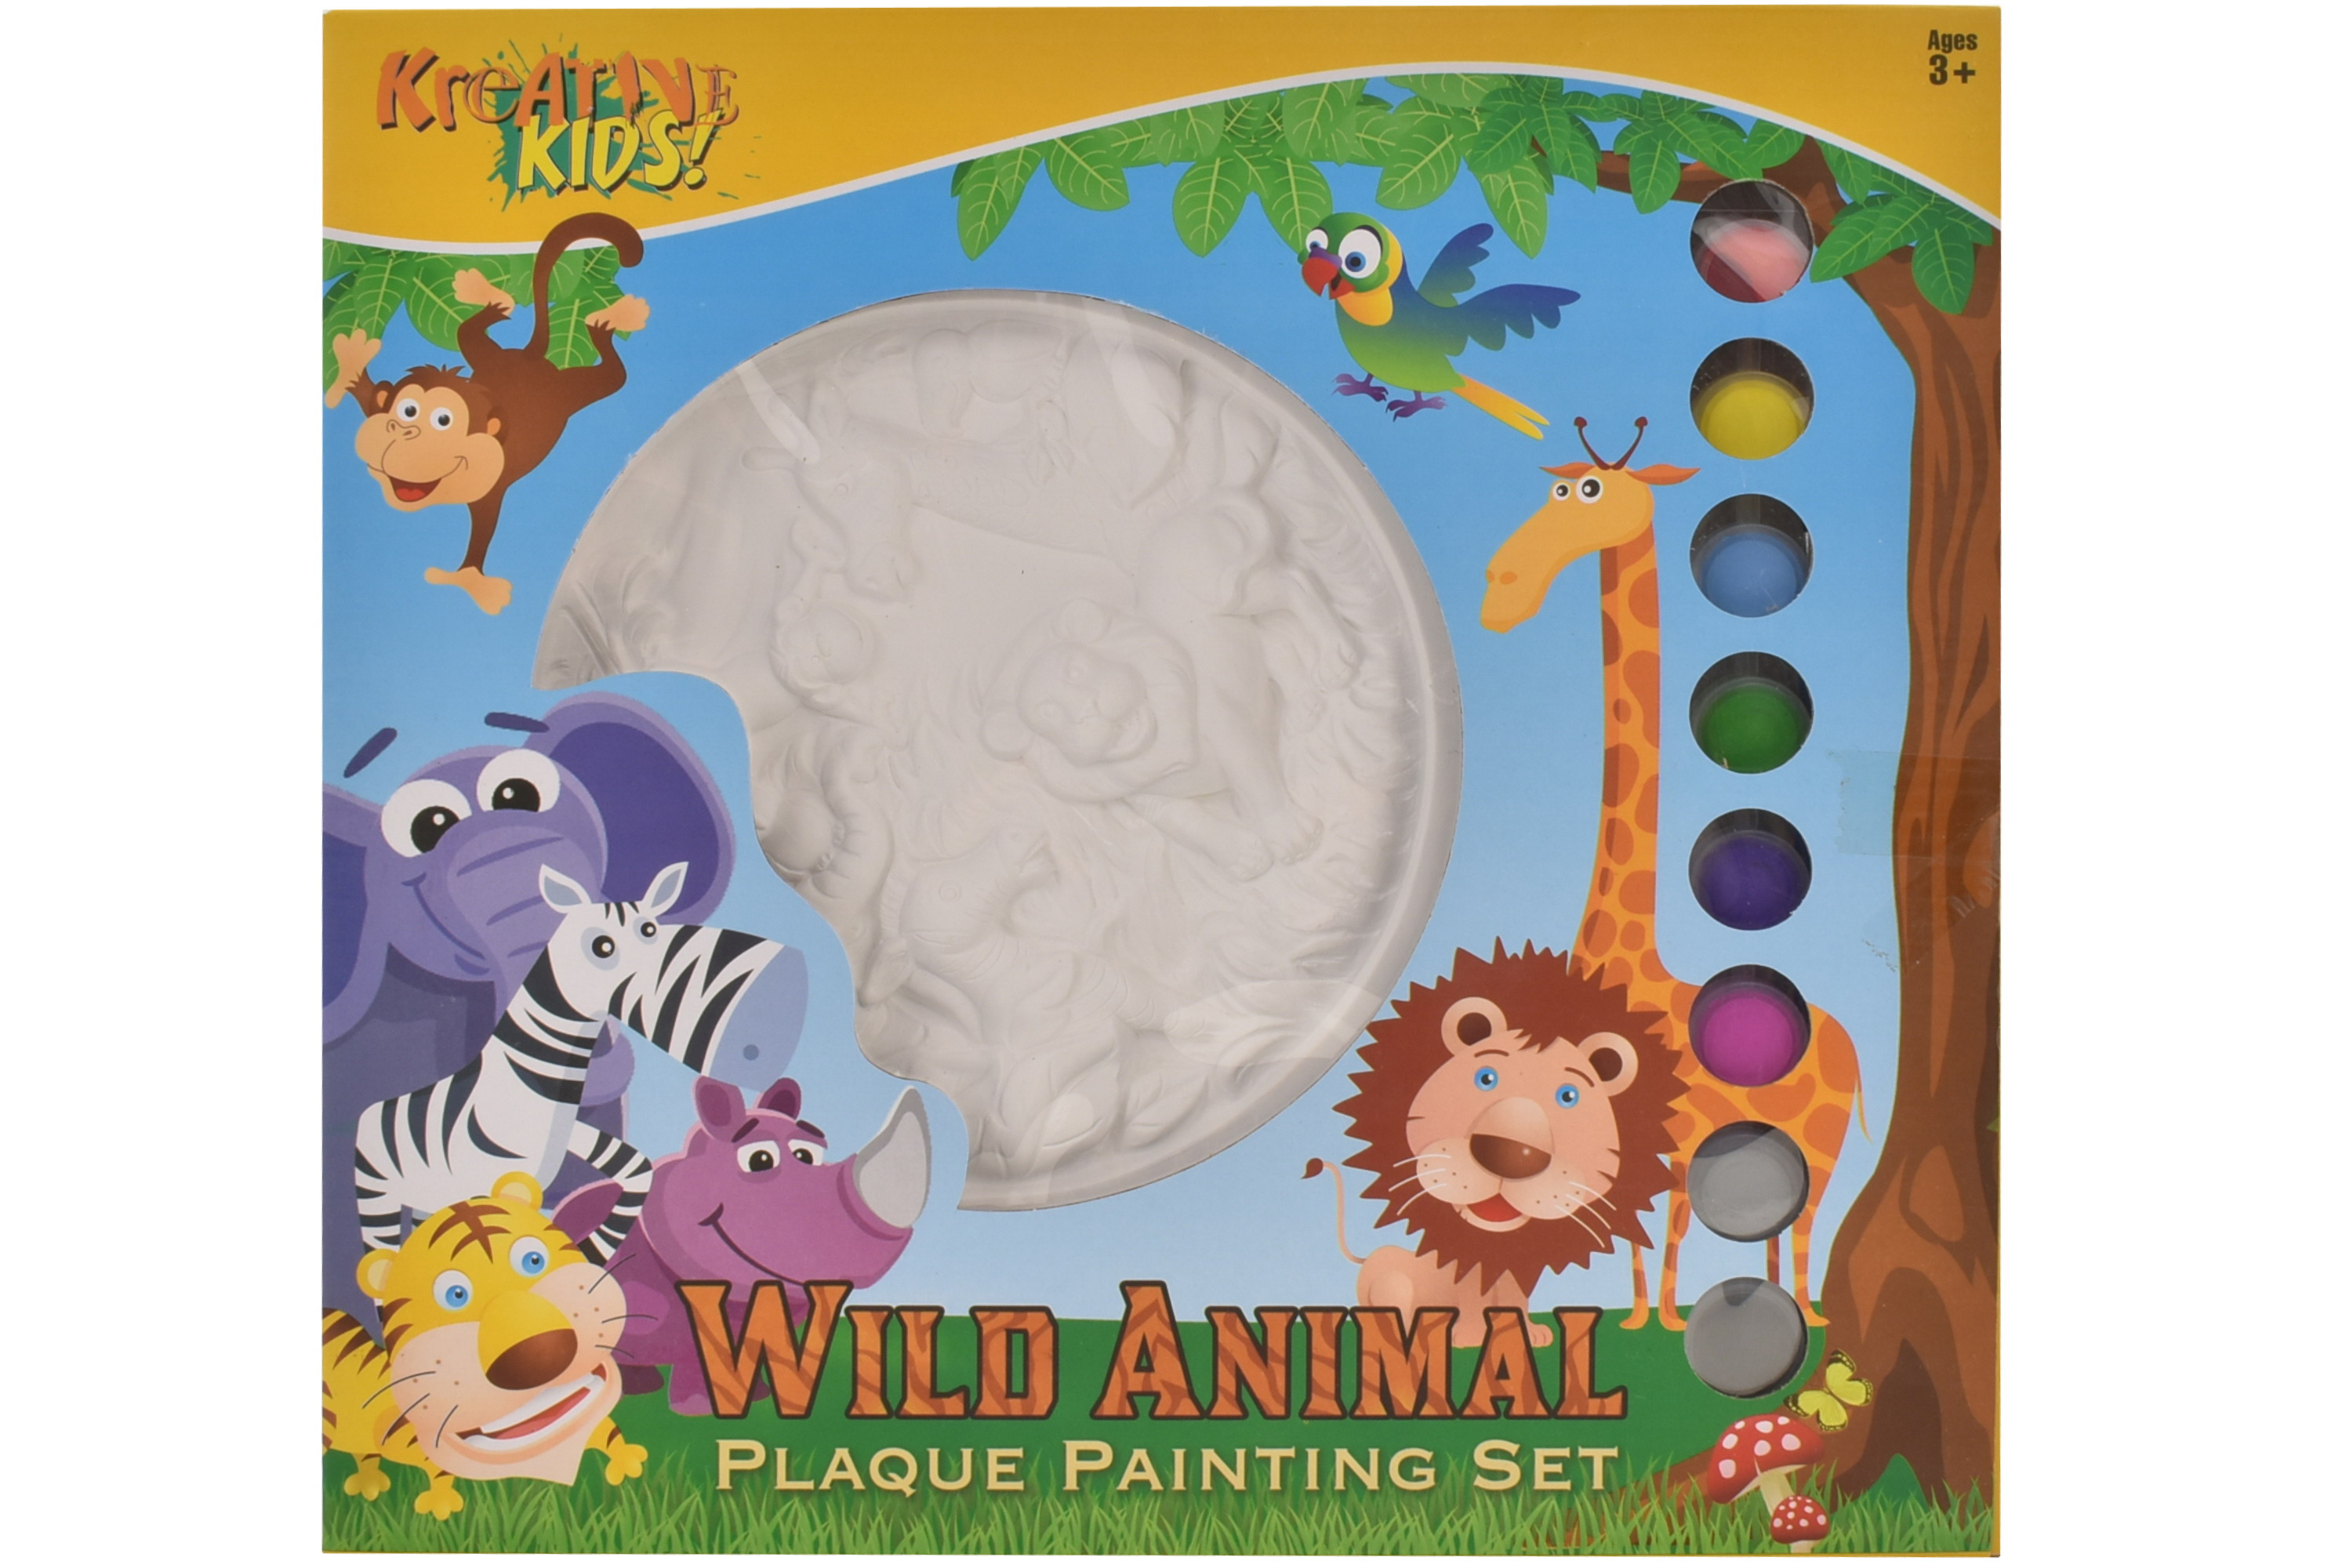 Wild Animal Plaque Plaster Painting Set In Window Box